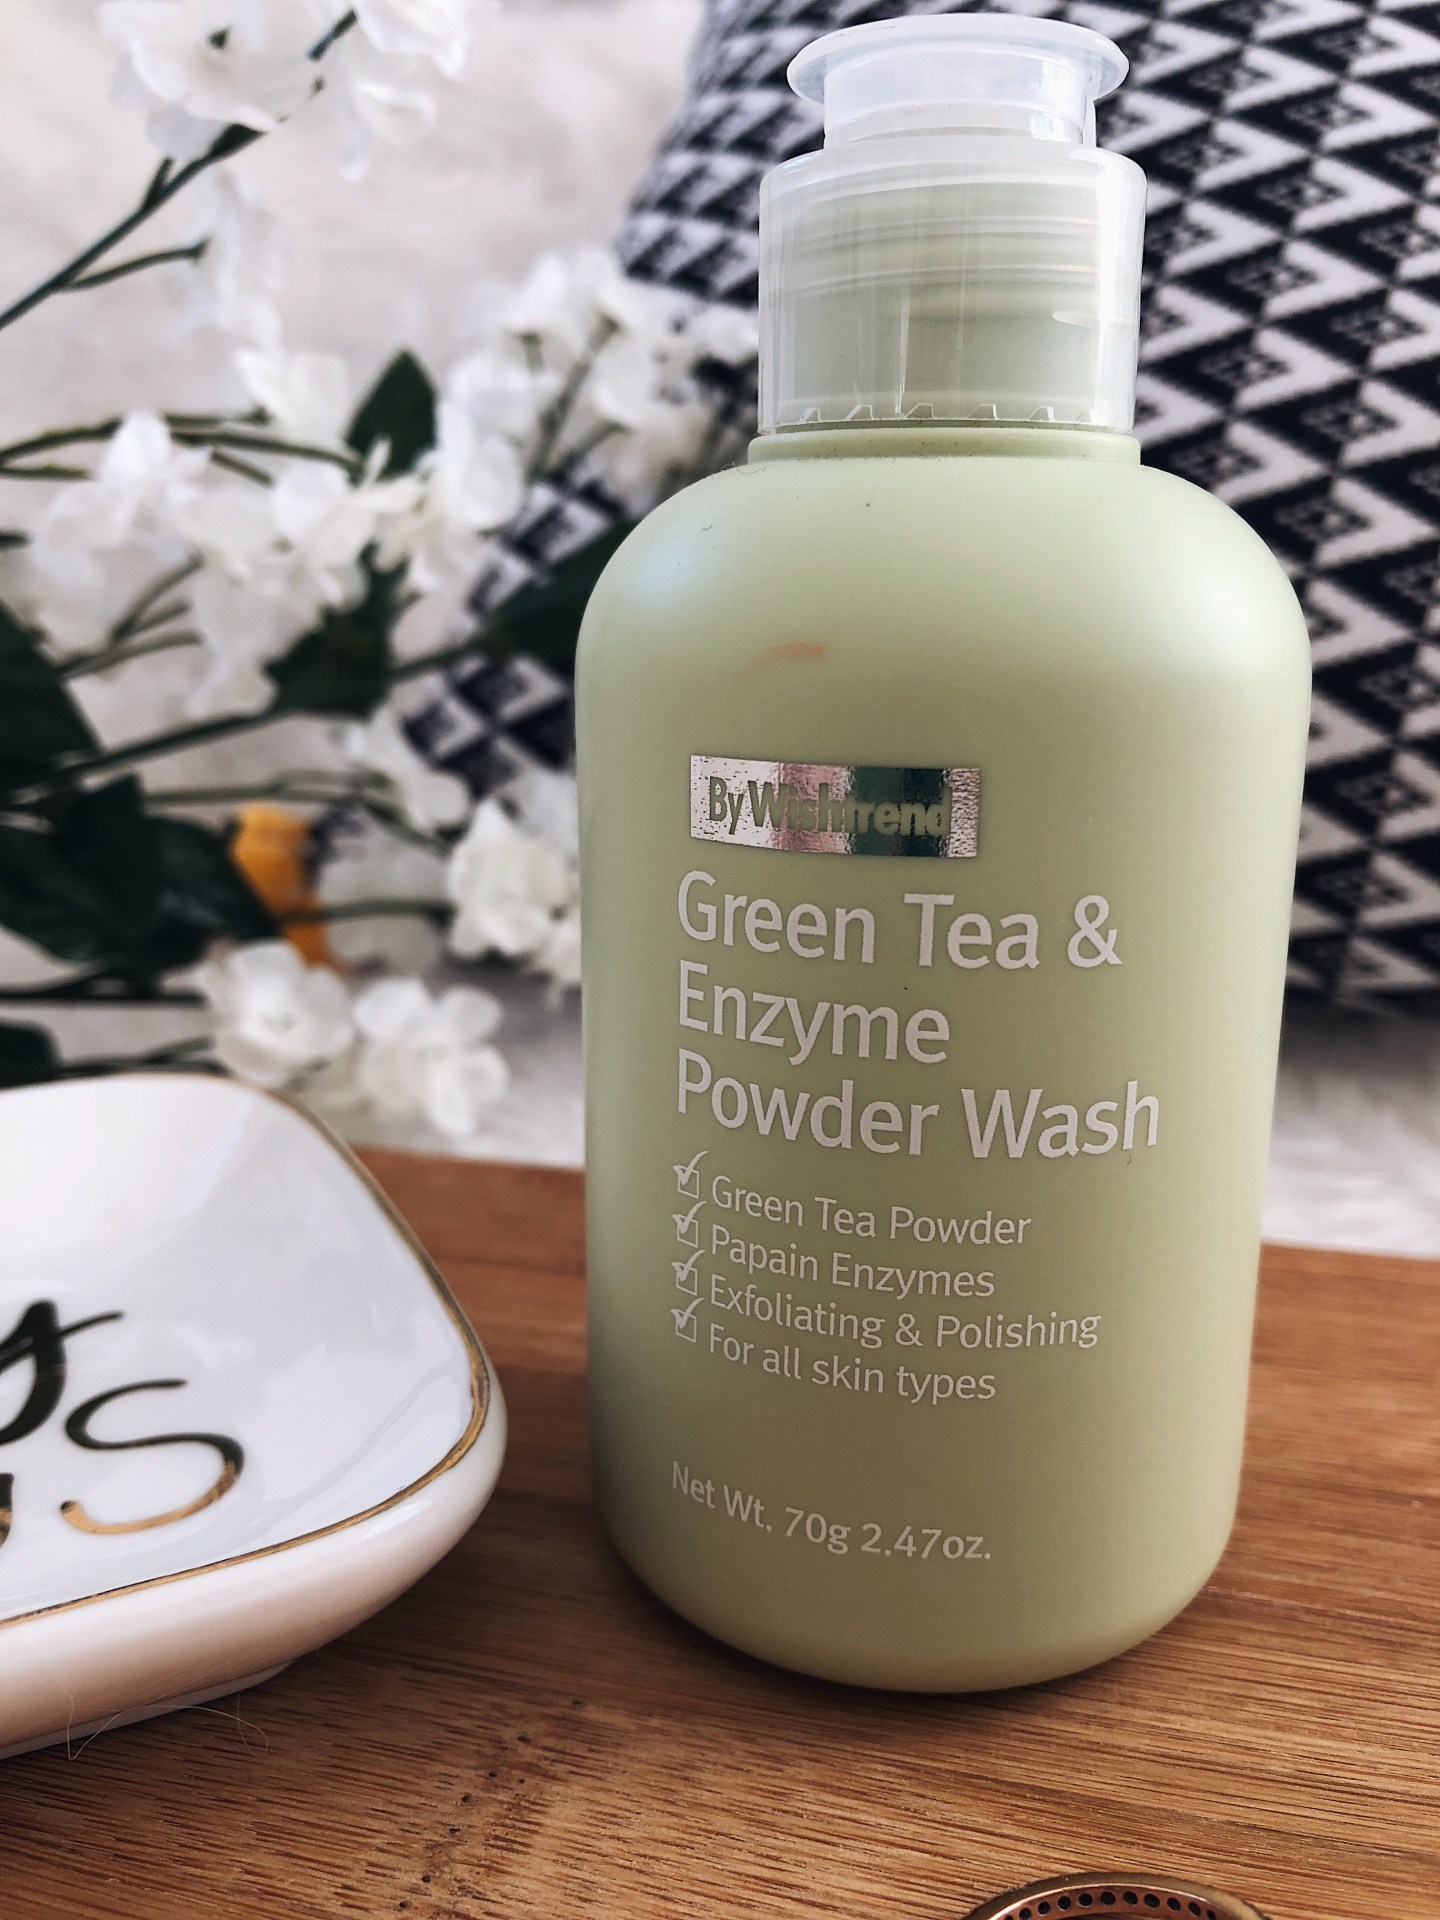 BY Wishtrend Green Tea & Enzyme Powder Wash Review